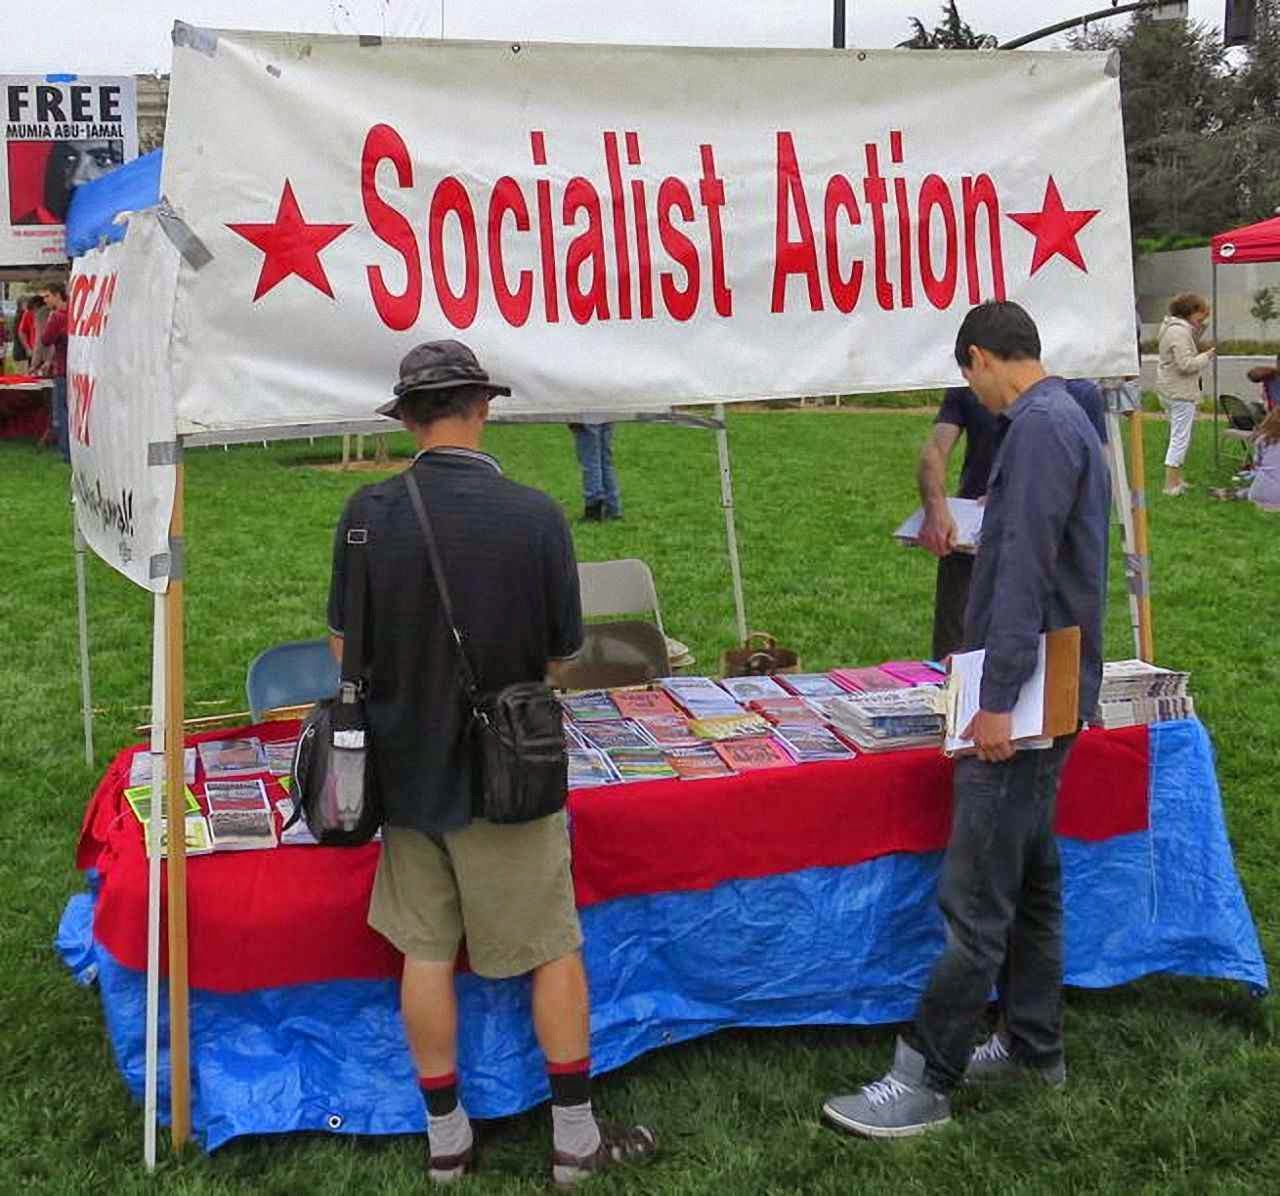 Militantismo socialista ostensivo na People's Climate Rally, Oakland, Califórnia.